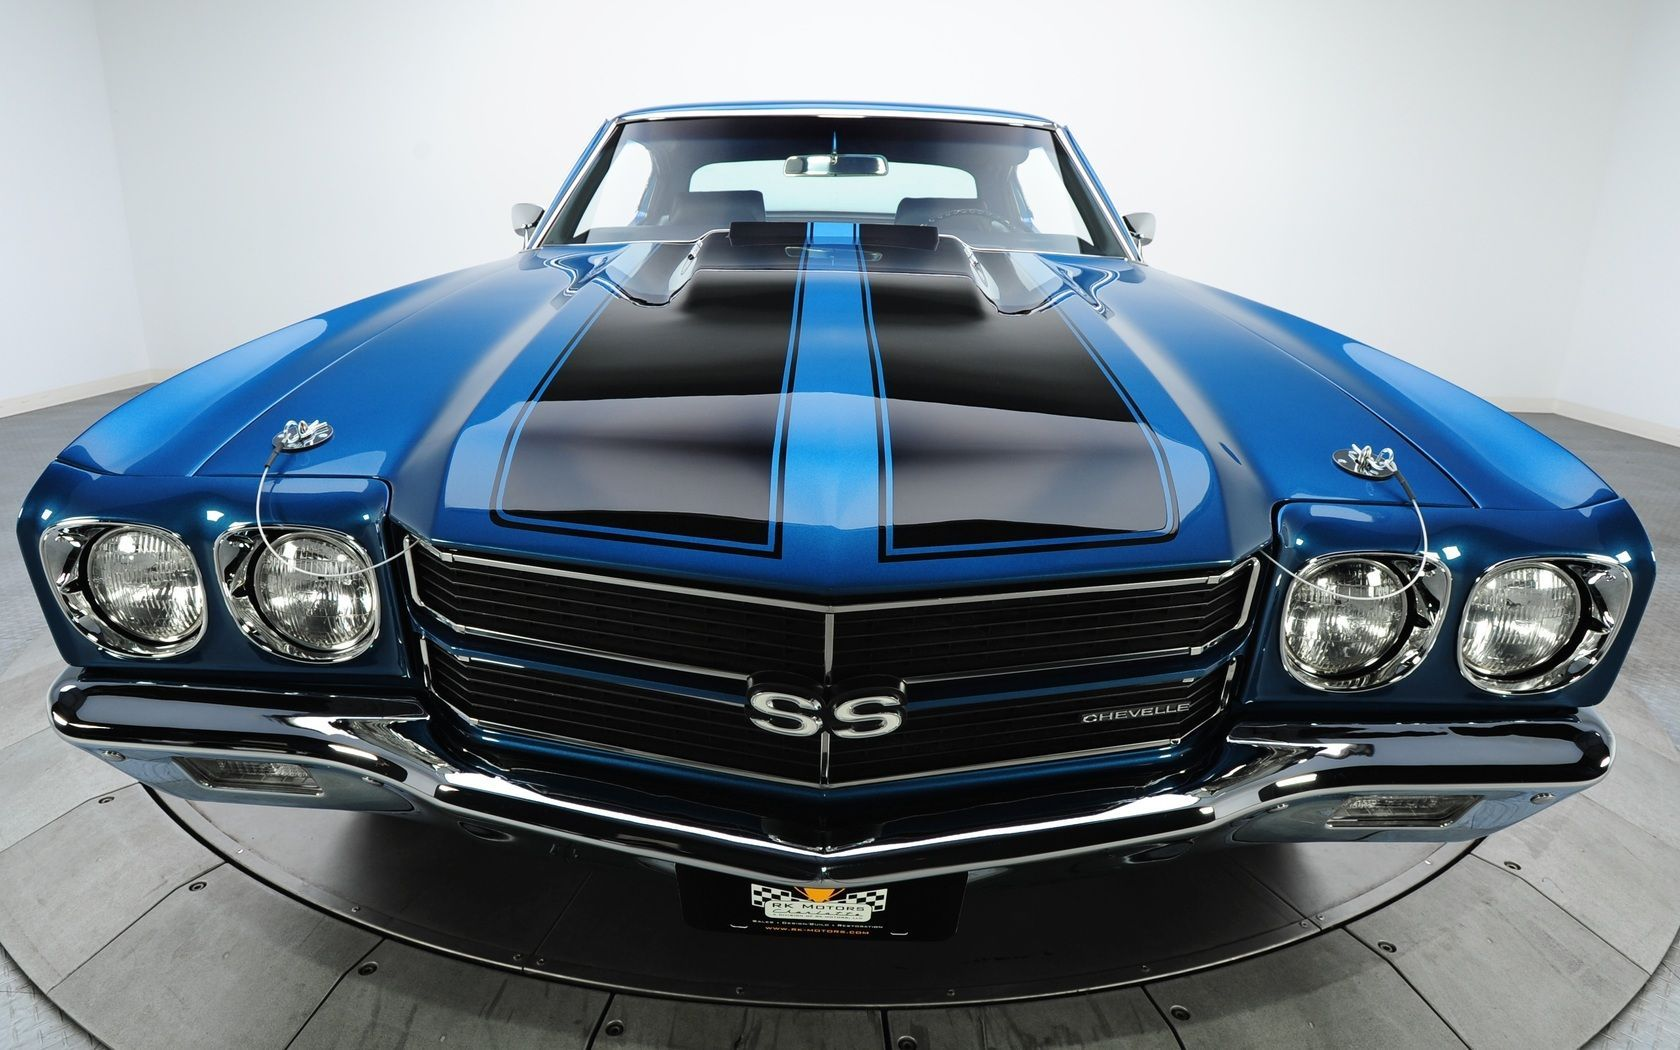 Chevy Muscle Cars >> Chevy Muscle Car Wallpapers Top Free Chevy Muscle Car